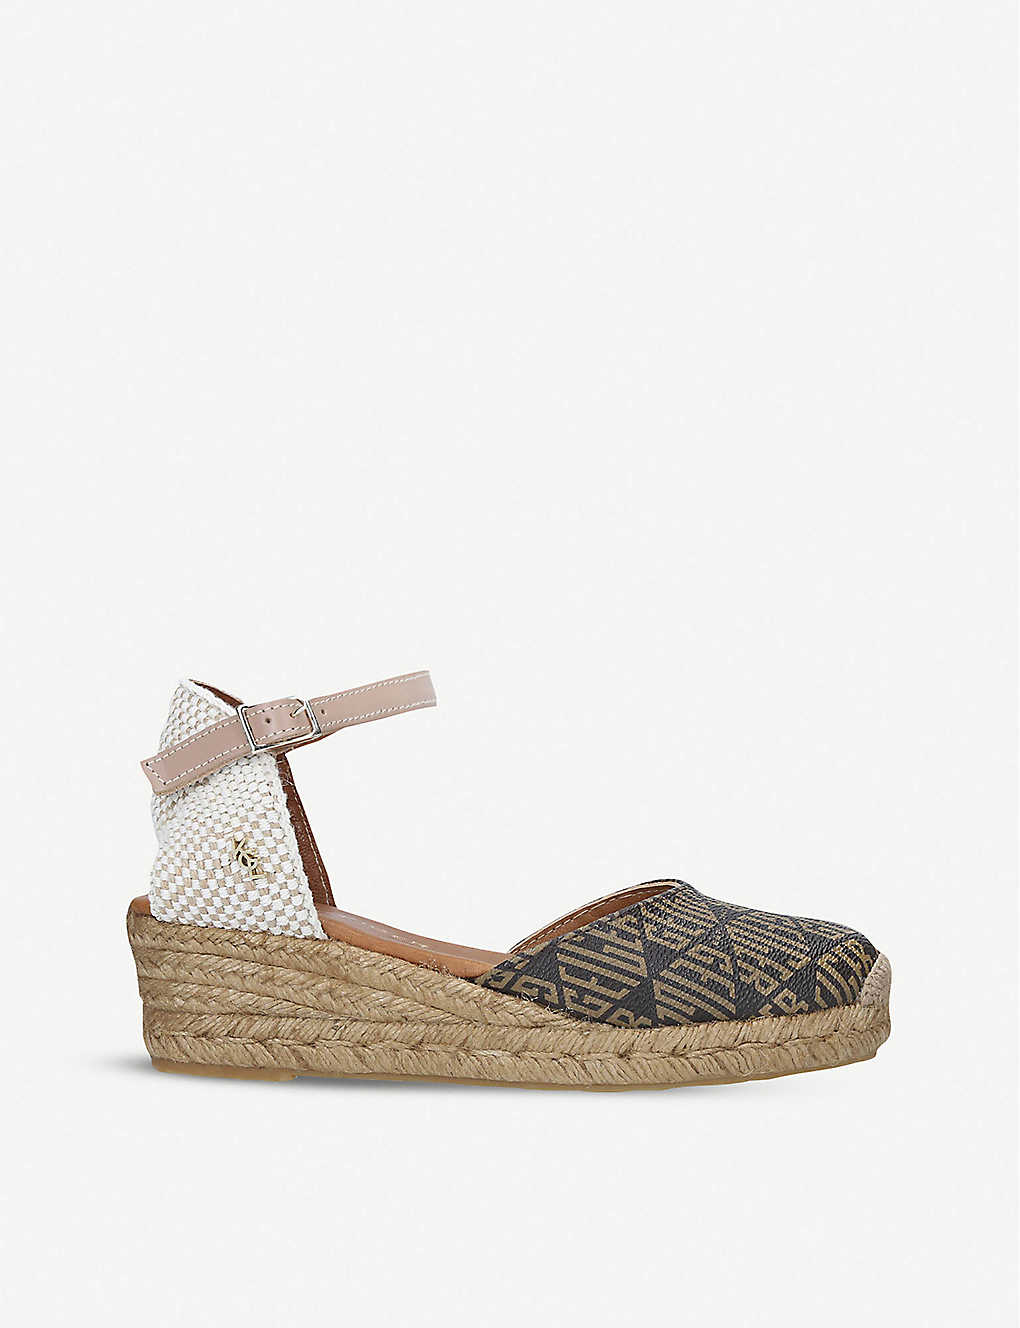 KURT GEIGER LONDON: Minty Monogram espadrille wedges